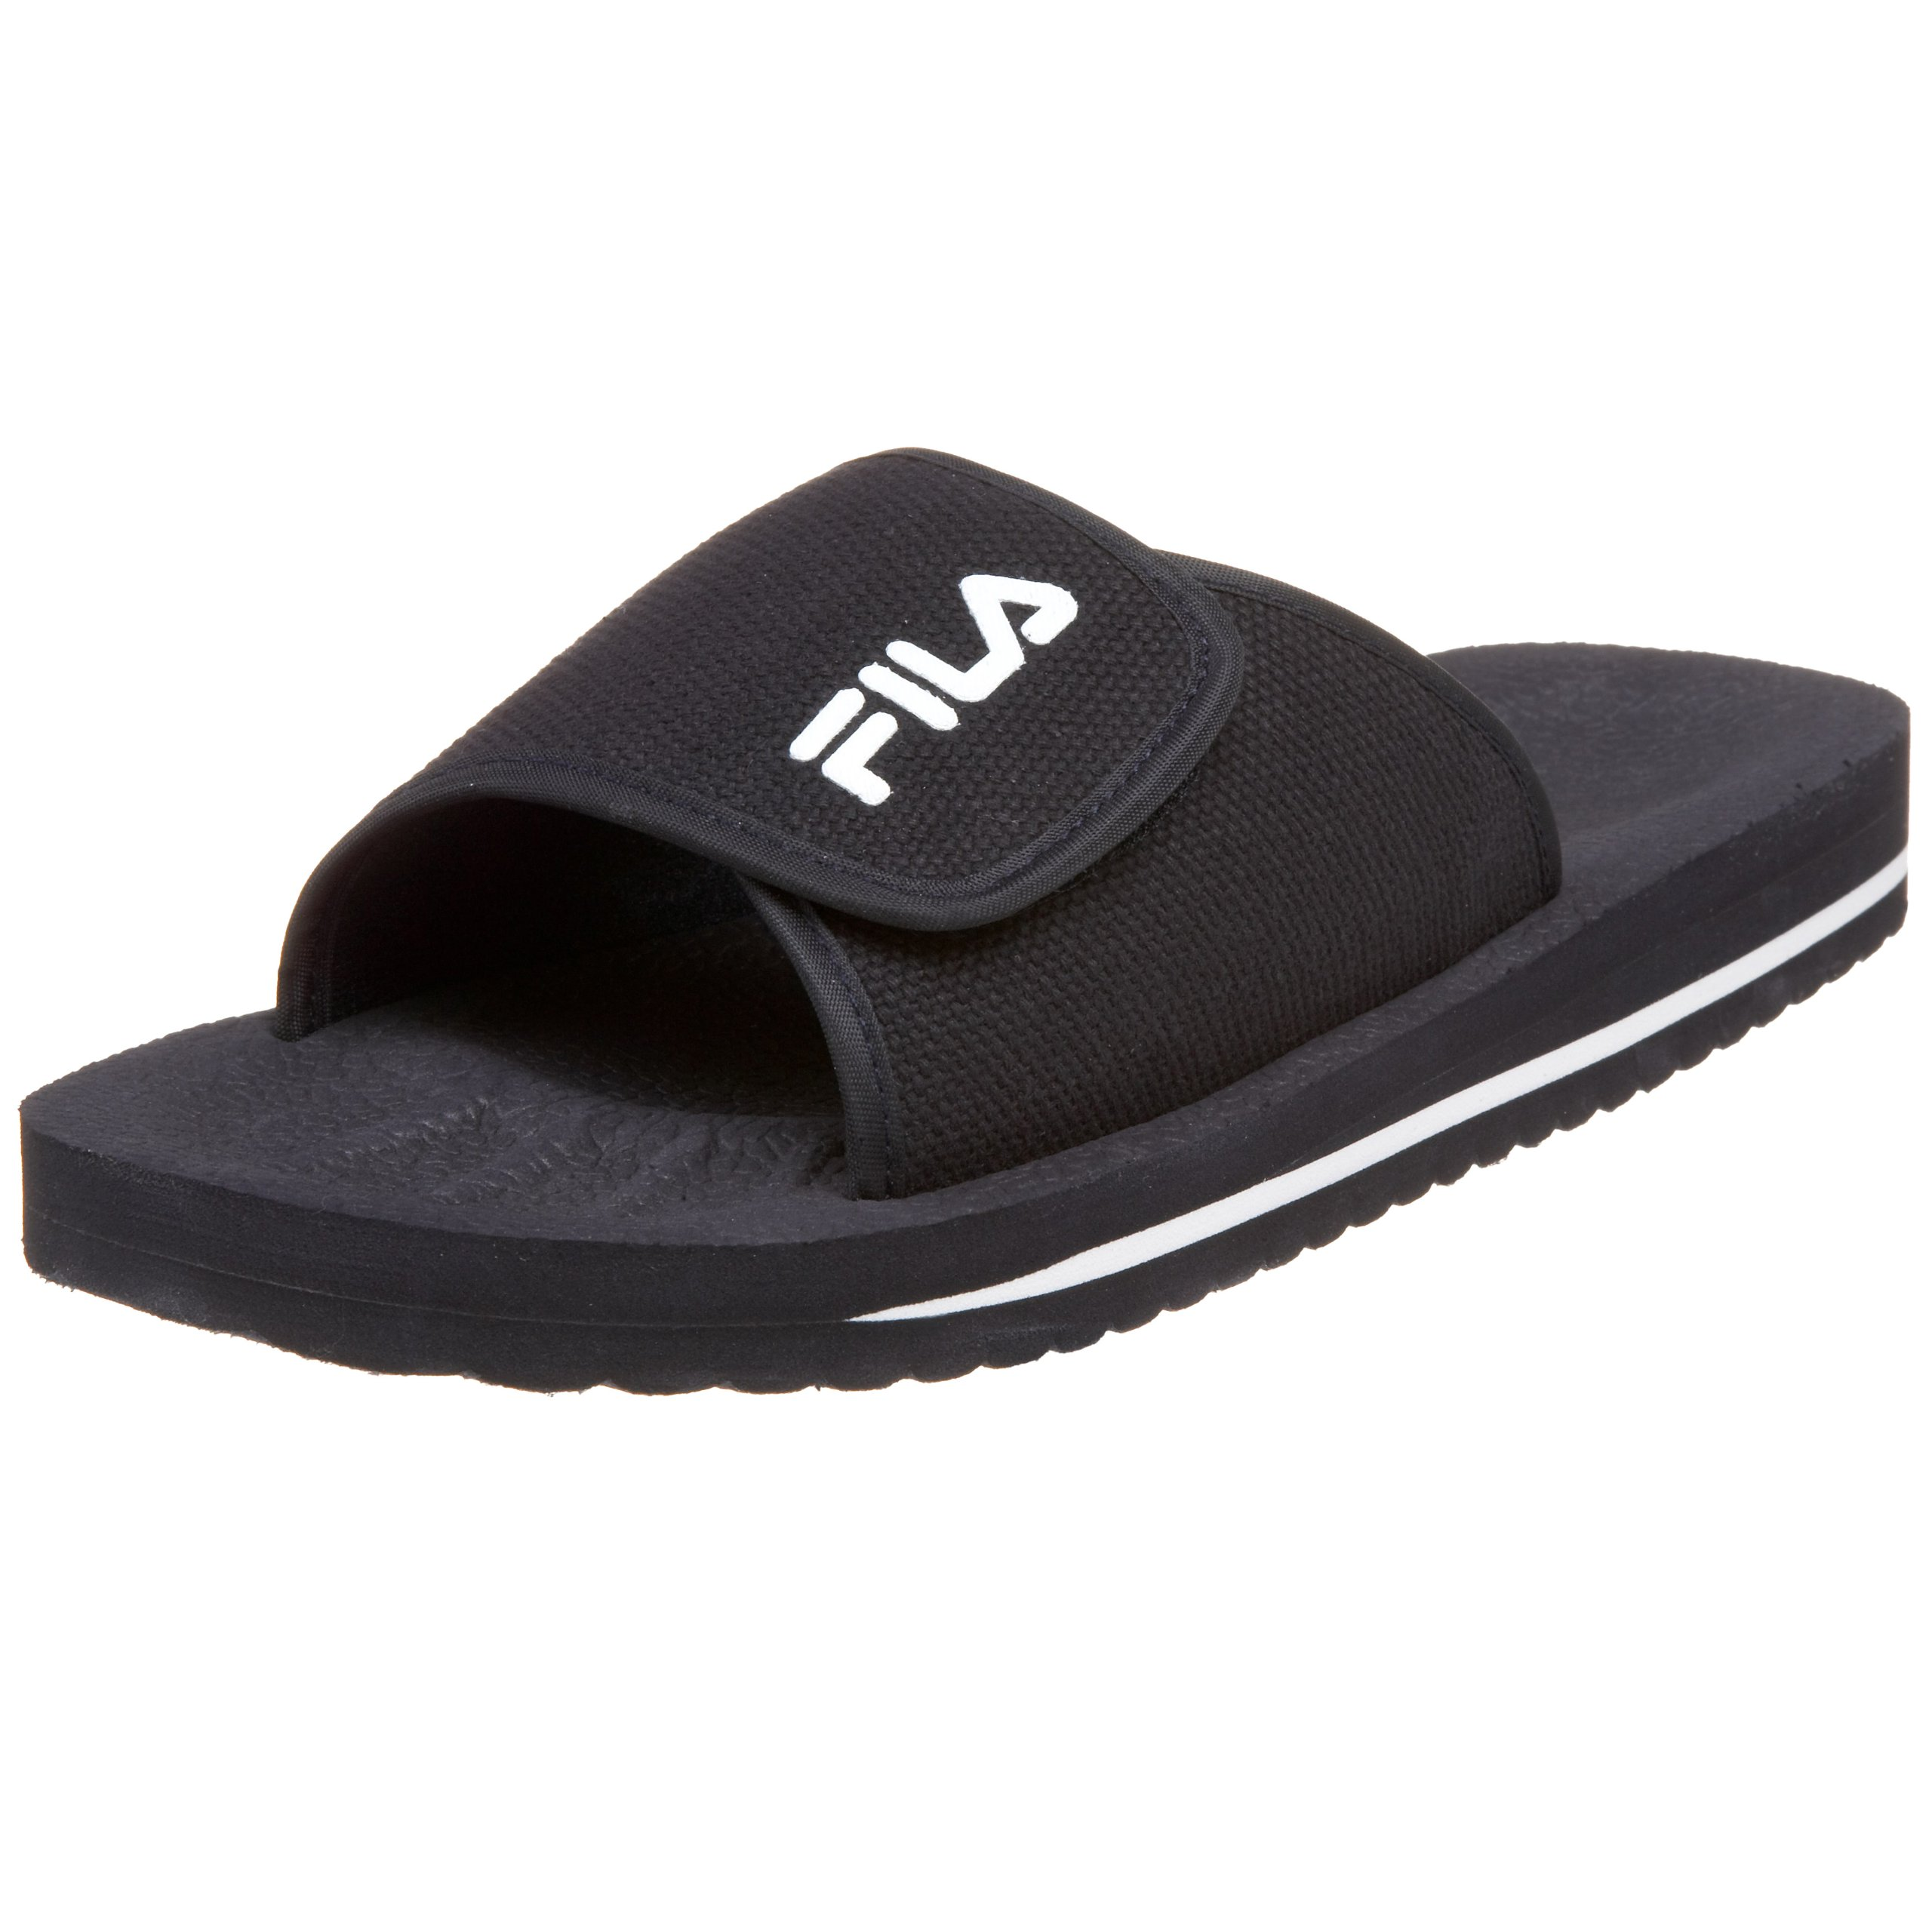 Fila Men's Slip On Sandal,Peacoat/White,12 M US by Fila (Image #1)